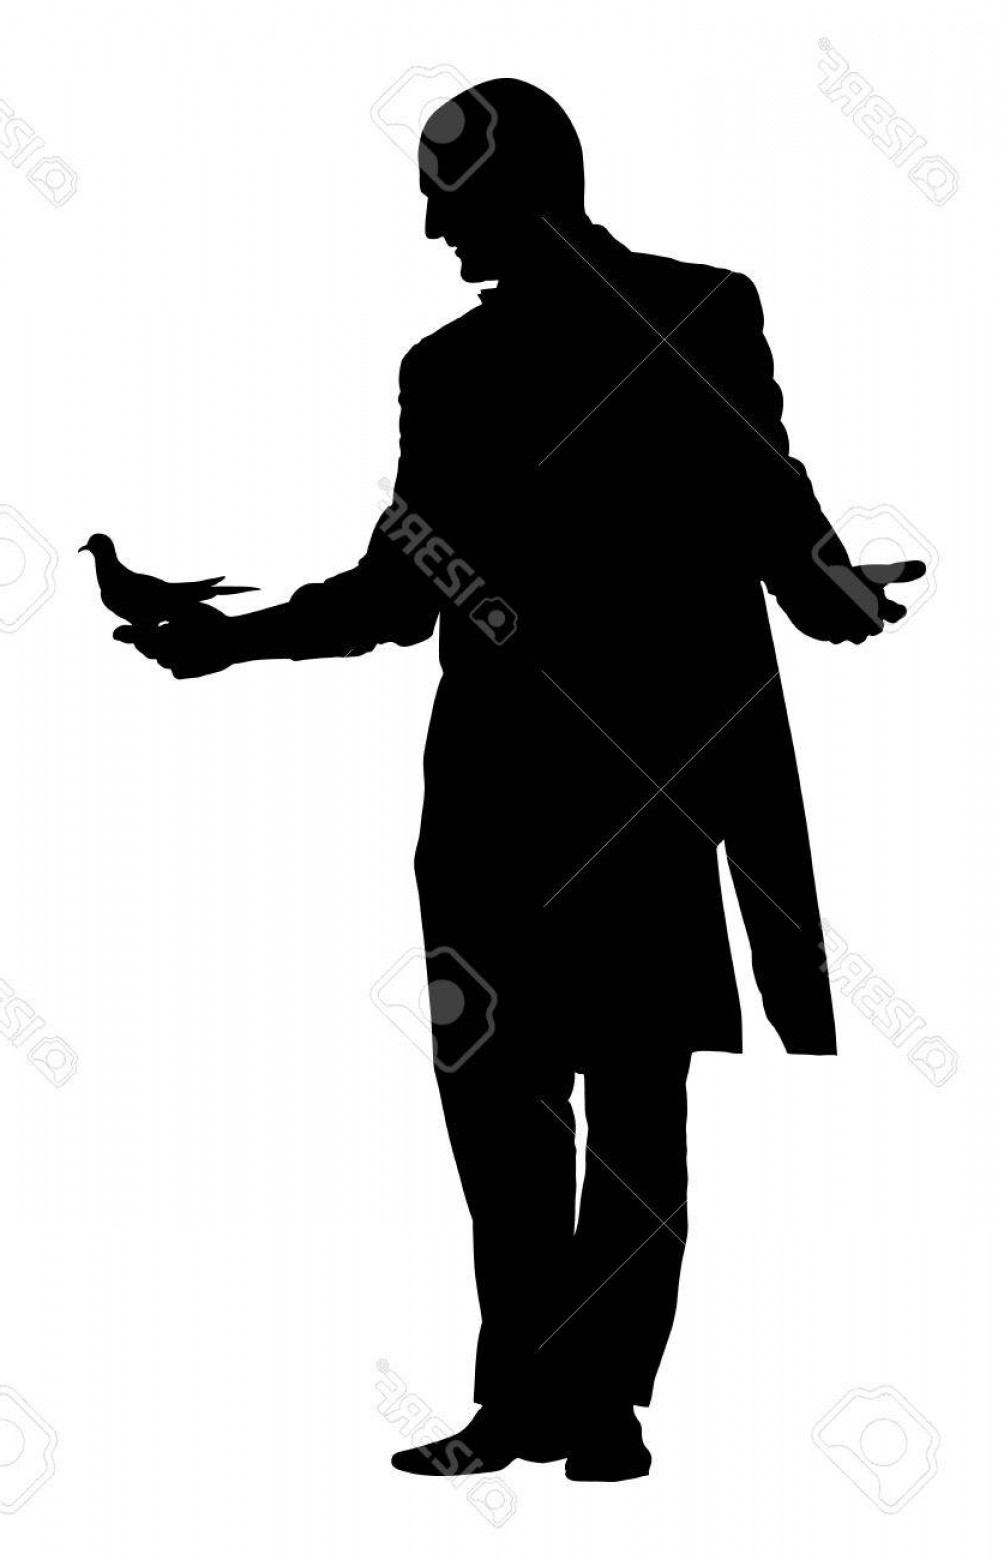 Wizard Silhouette Vector: Photostock Vector Magician Performing Trick With Pigeon Or Dove Vector Silhouette Illustration Isolated On White Backg